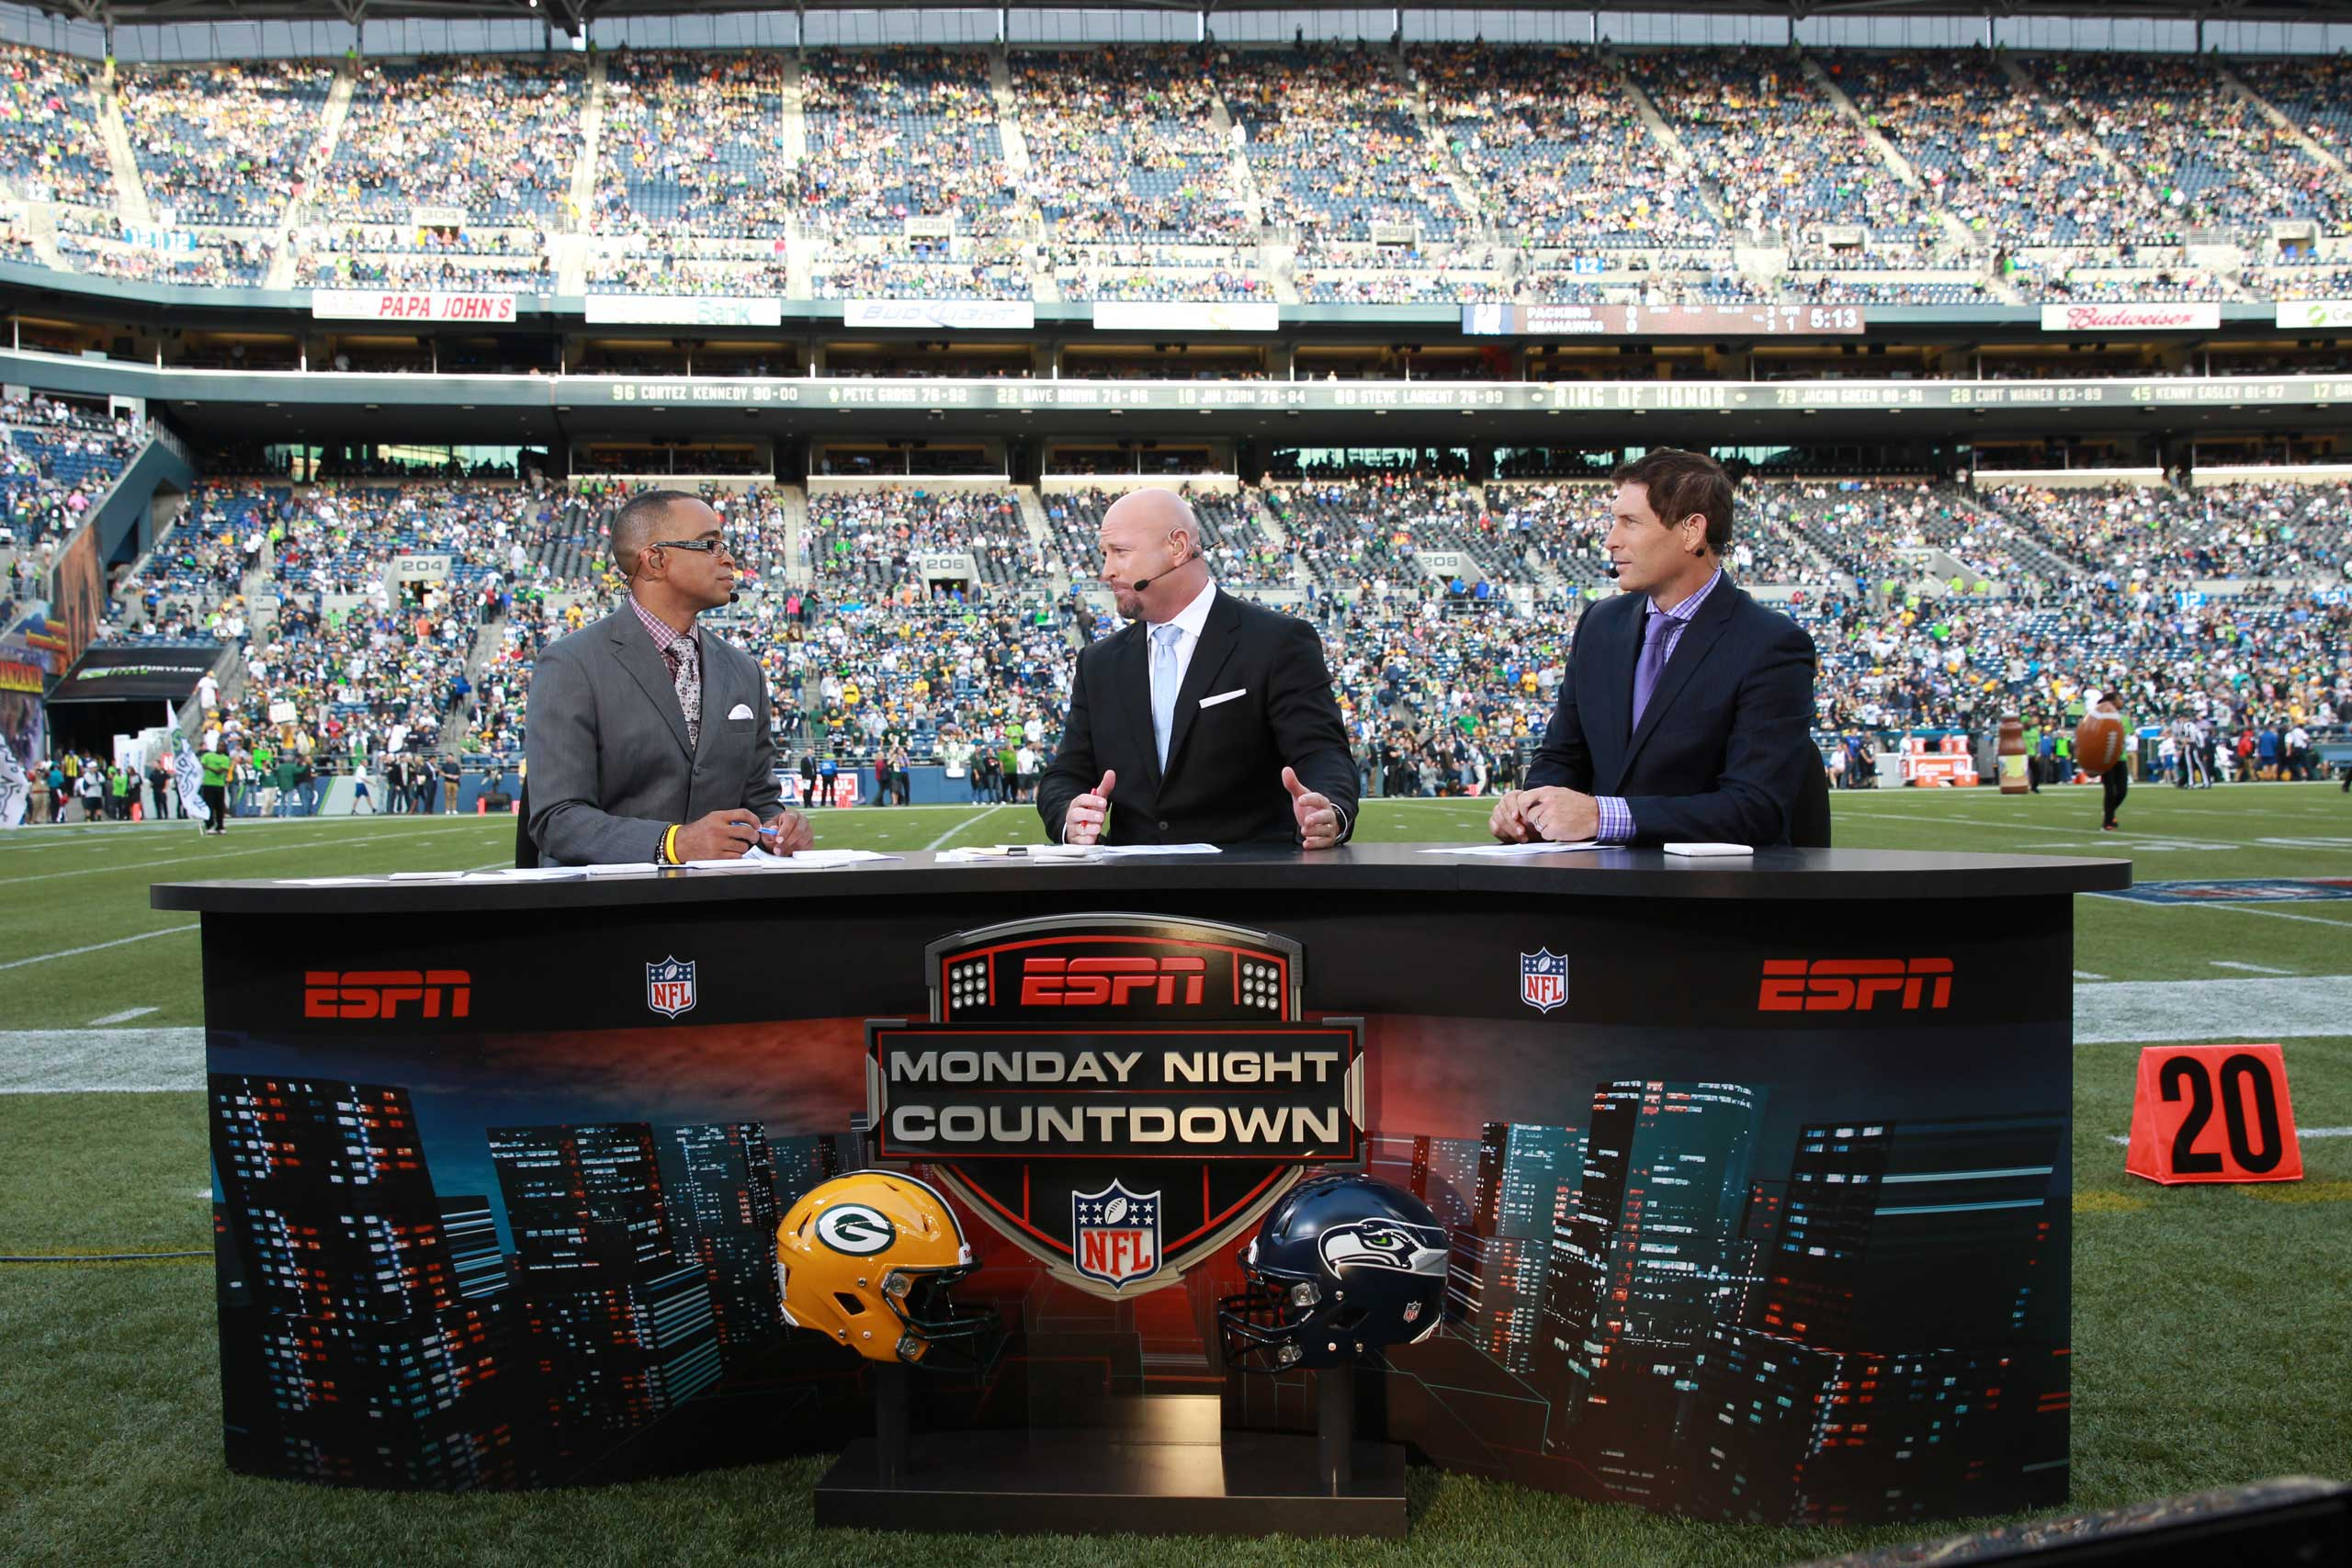 From Left: Stuart Scott, Trent Dilfer and Steve Young sit at their set on the field during an NFL Monday Night Football game between the Seattle Seahawks and the Green Bay Packers in Seattle on Sept. 24, 2012.